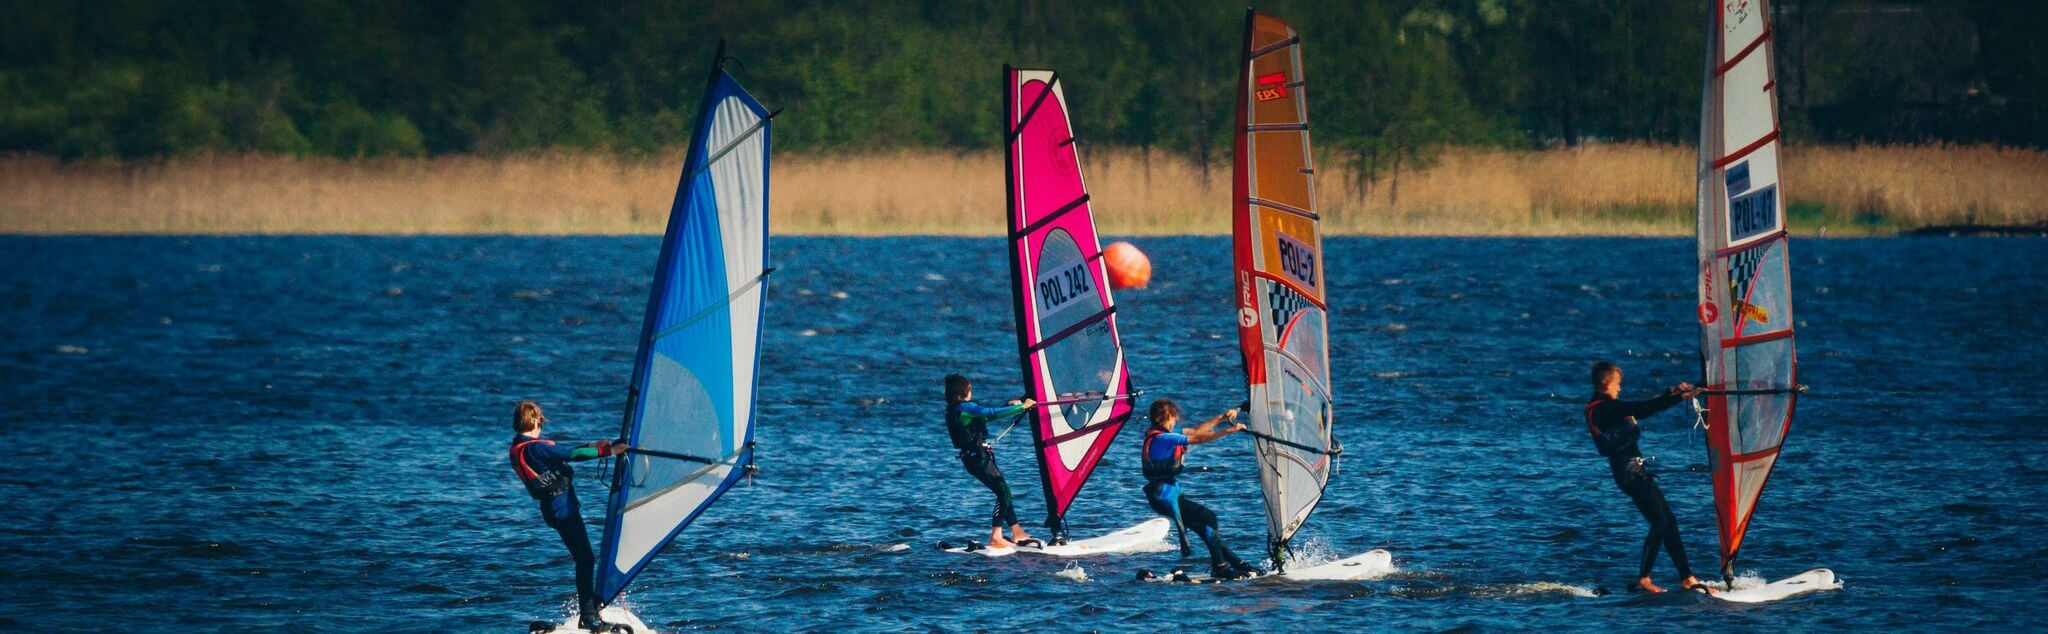 Windsurfing in United Kingdom